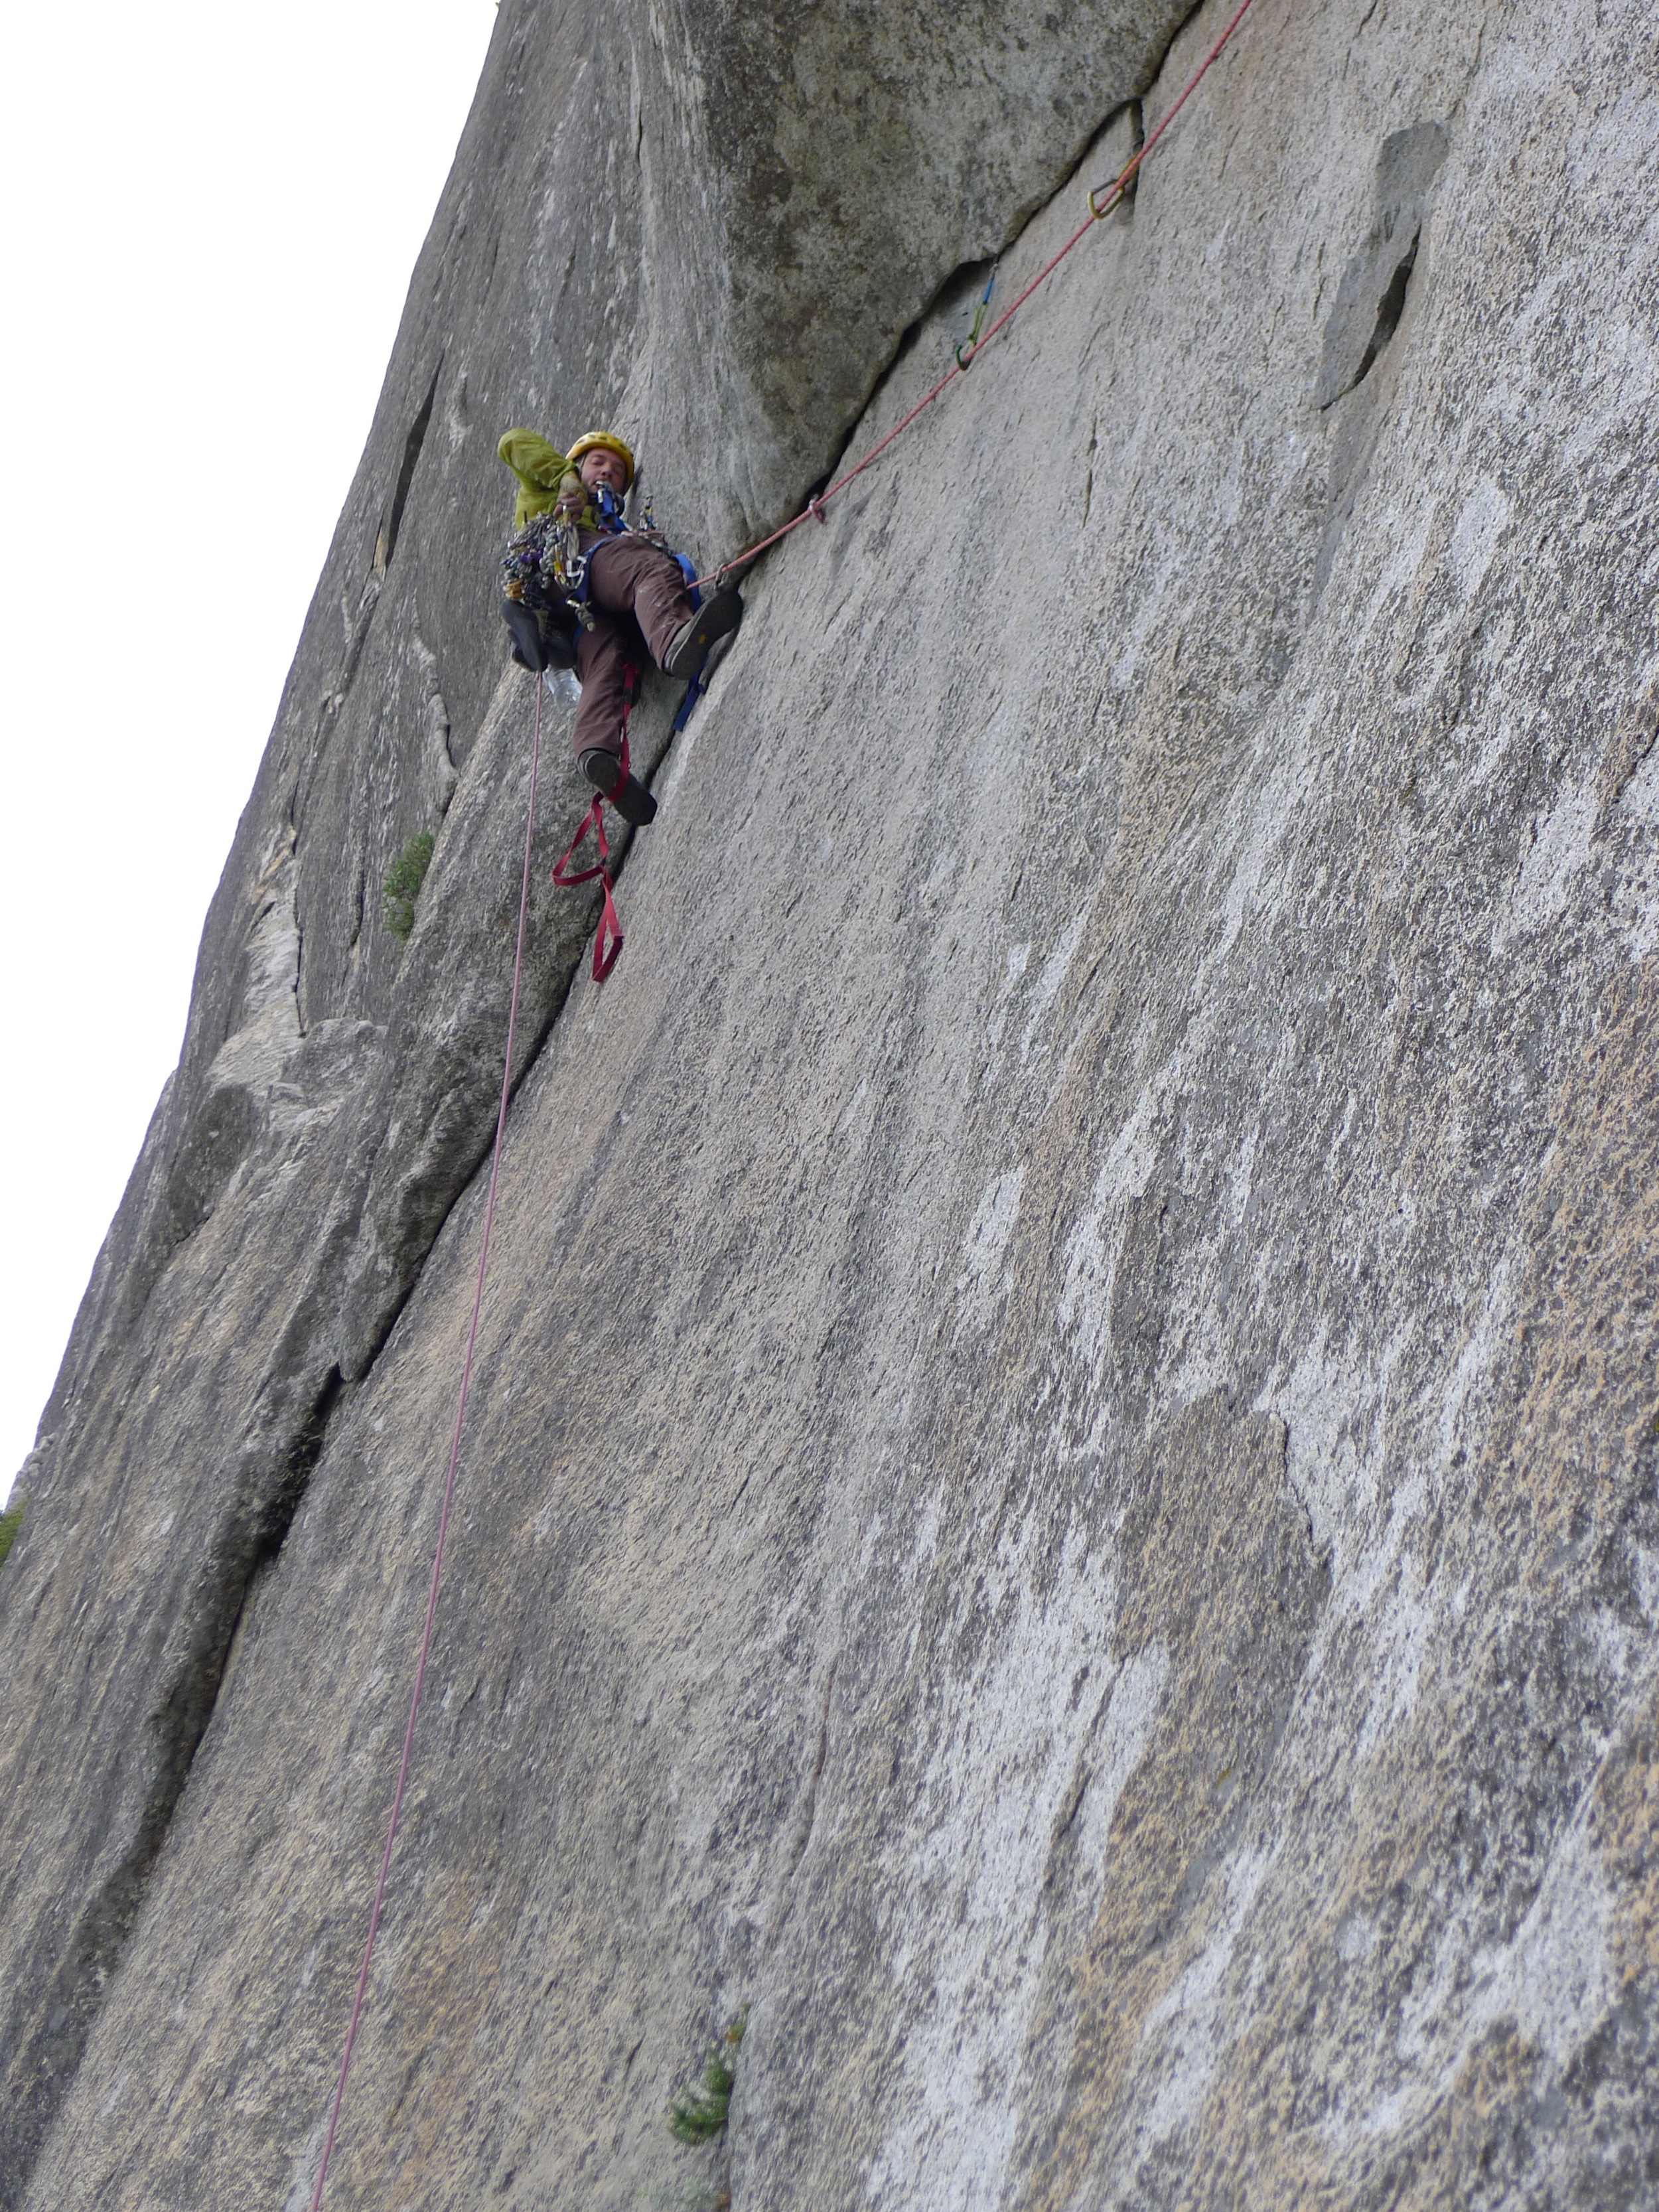 My longest aid lead of the trip, about 150' of an overhanging arch to a thin seam. The mental crux was stepping out of the aiders near the top and freeing a few 5.7 moves with a full aid rack on and in approach shoes!